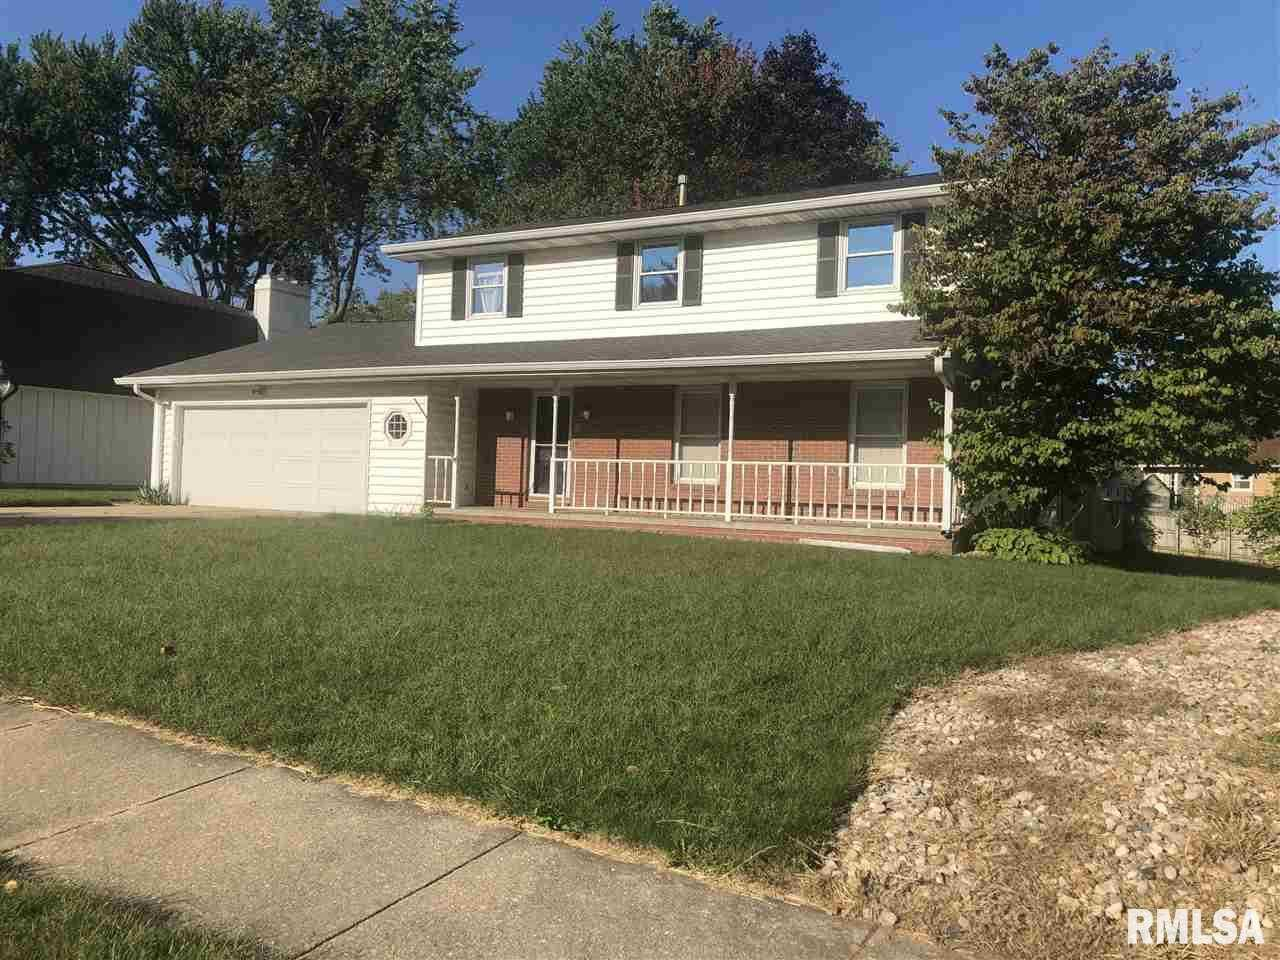 $165,375 - 4Br/4Ba -  for Sale in Old Orchard, Peoria